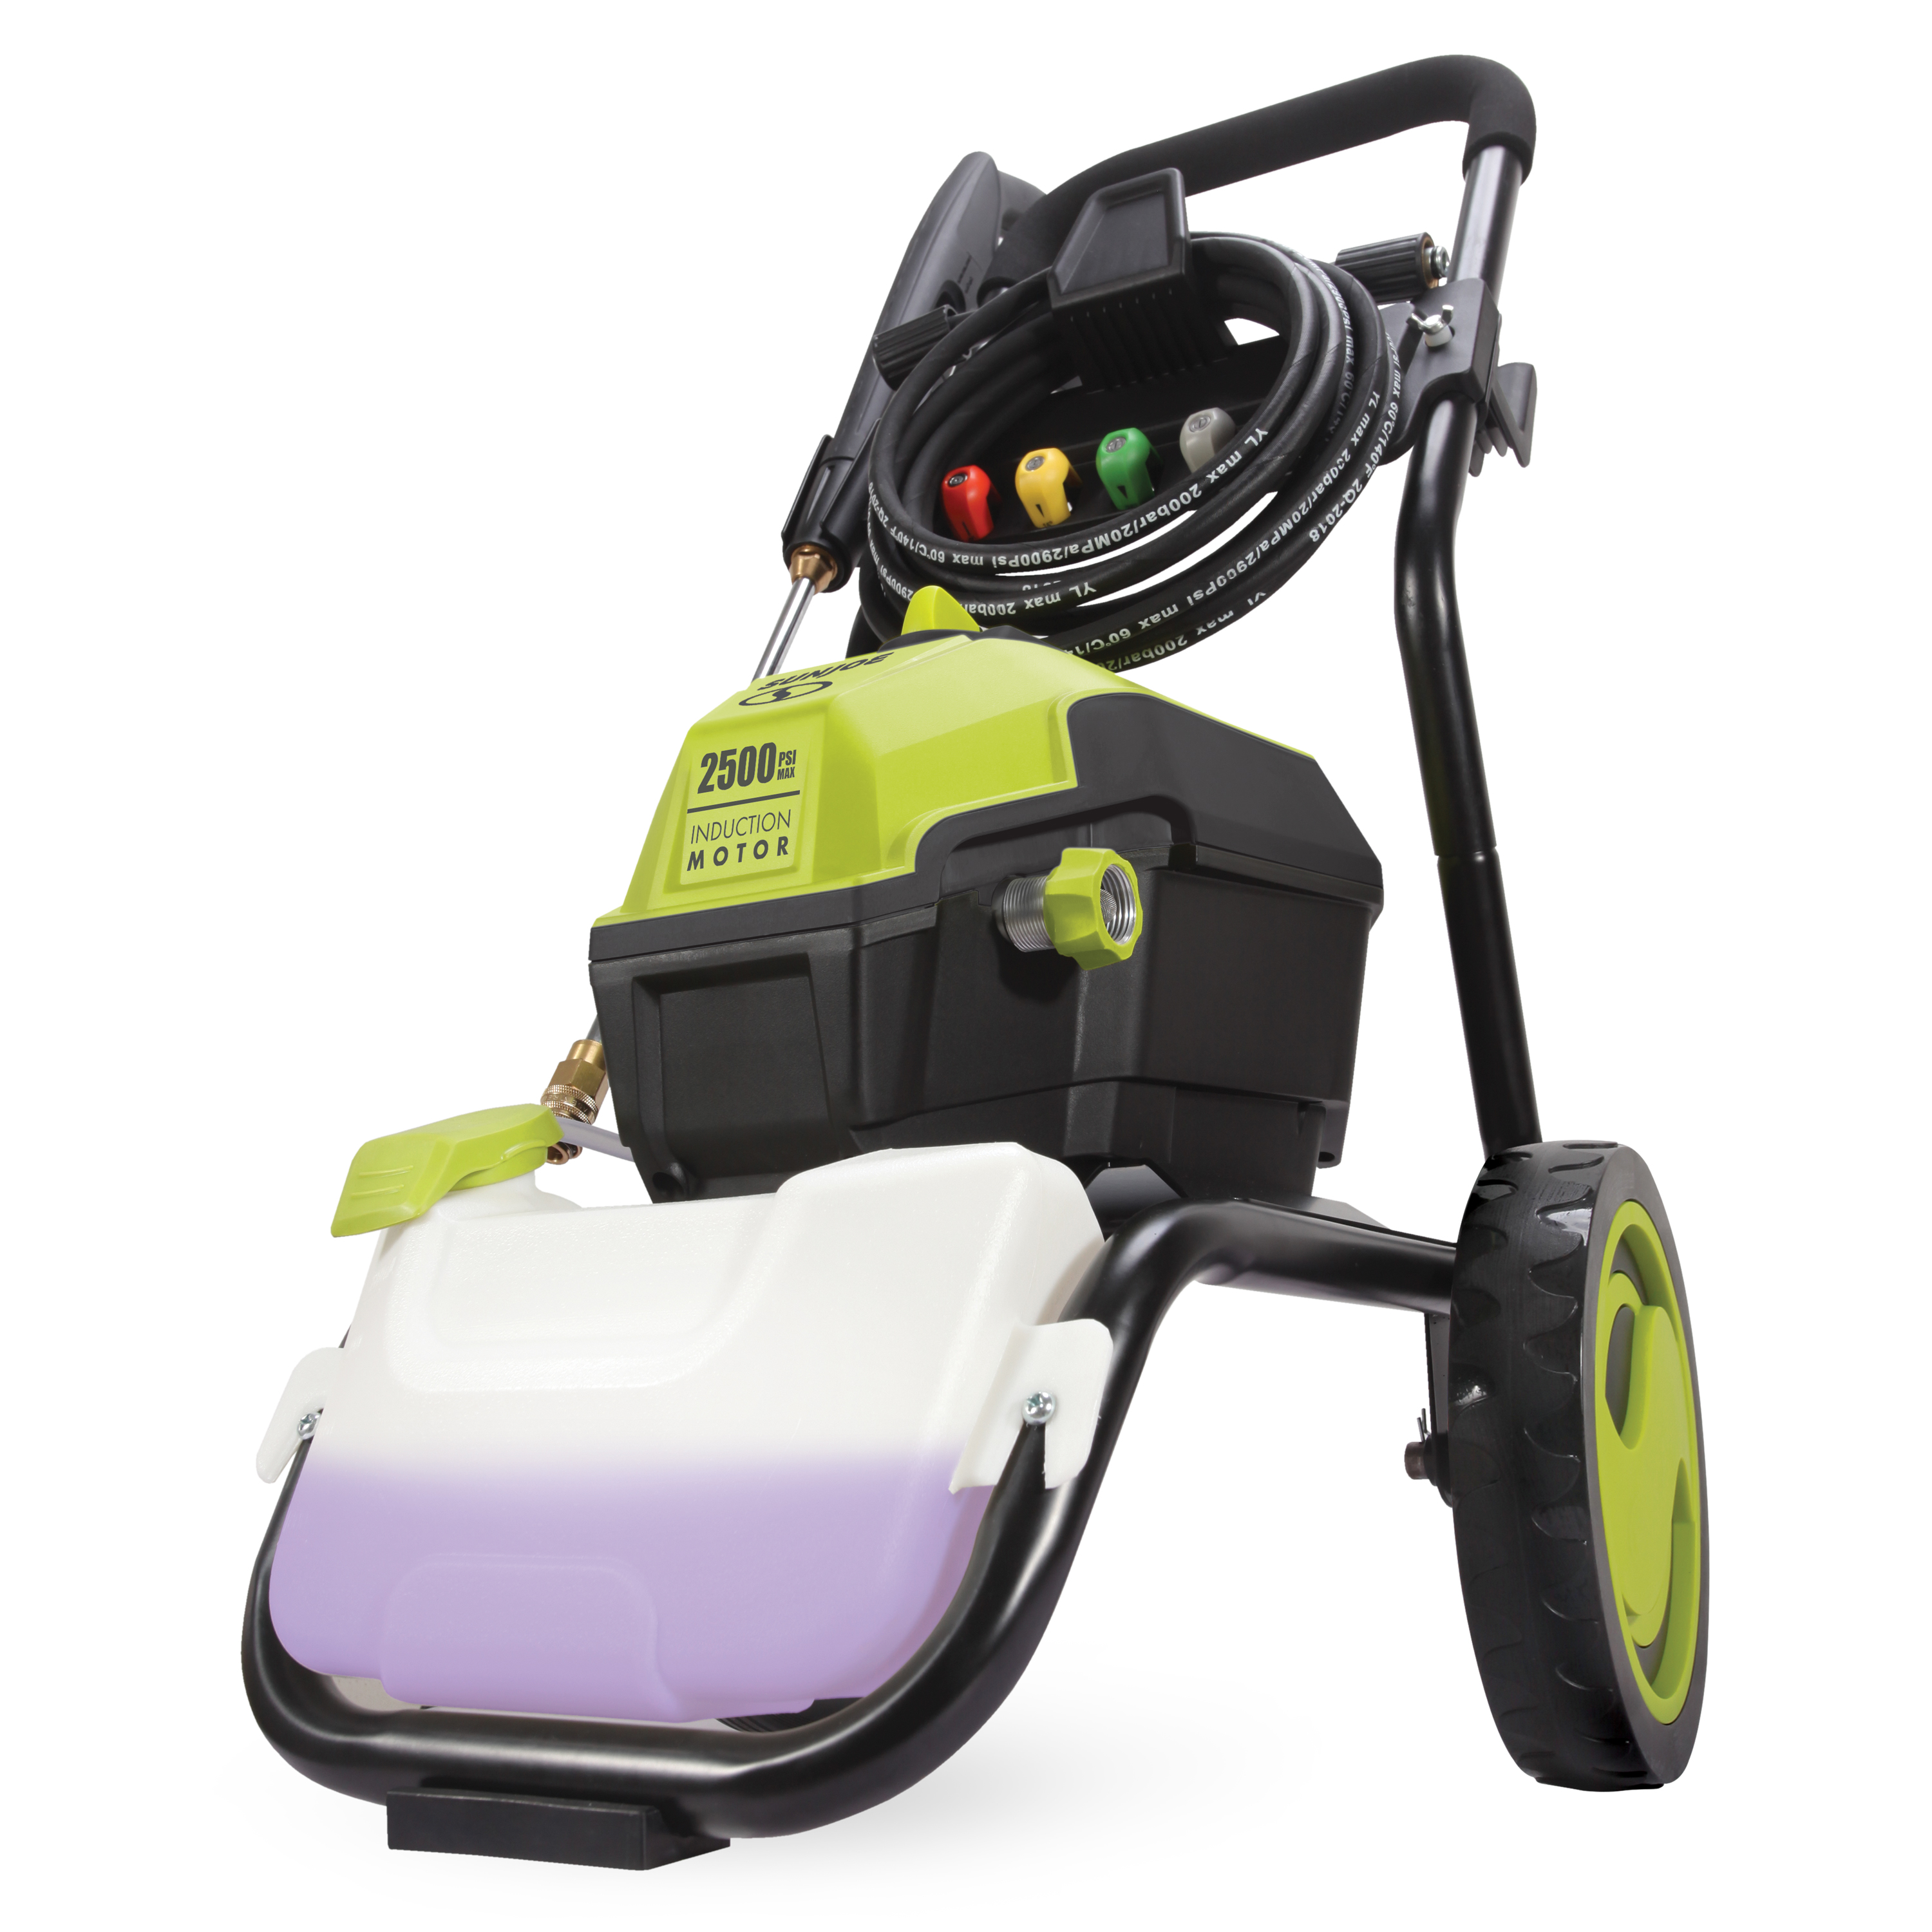 Sun Joe SPX4500 High Performance Induction Motor Electric Pressure Washer   2500 PSI Max   1.48 GPM   Roll Cage